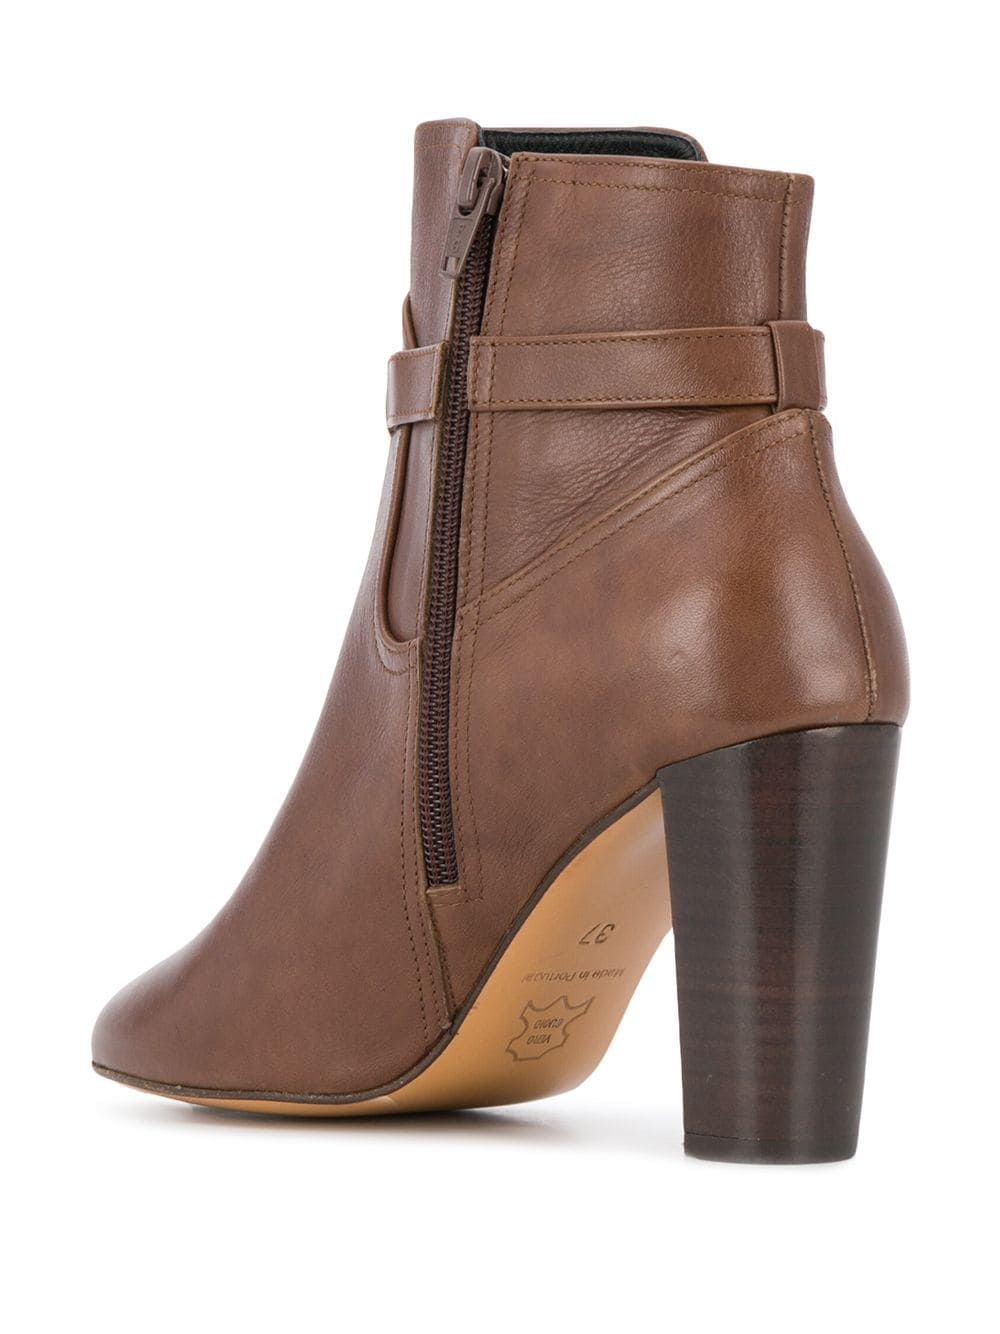 Tila March side-buckle ankle boots - Brown